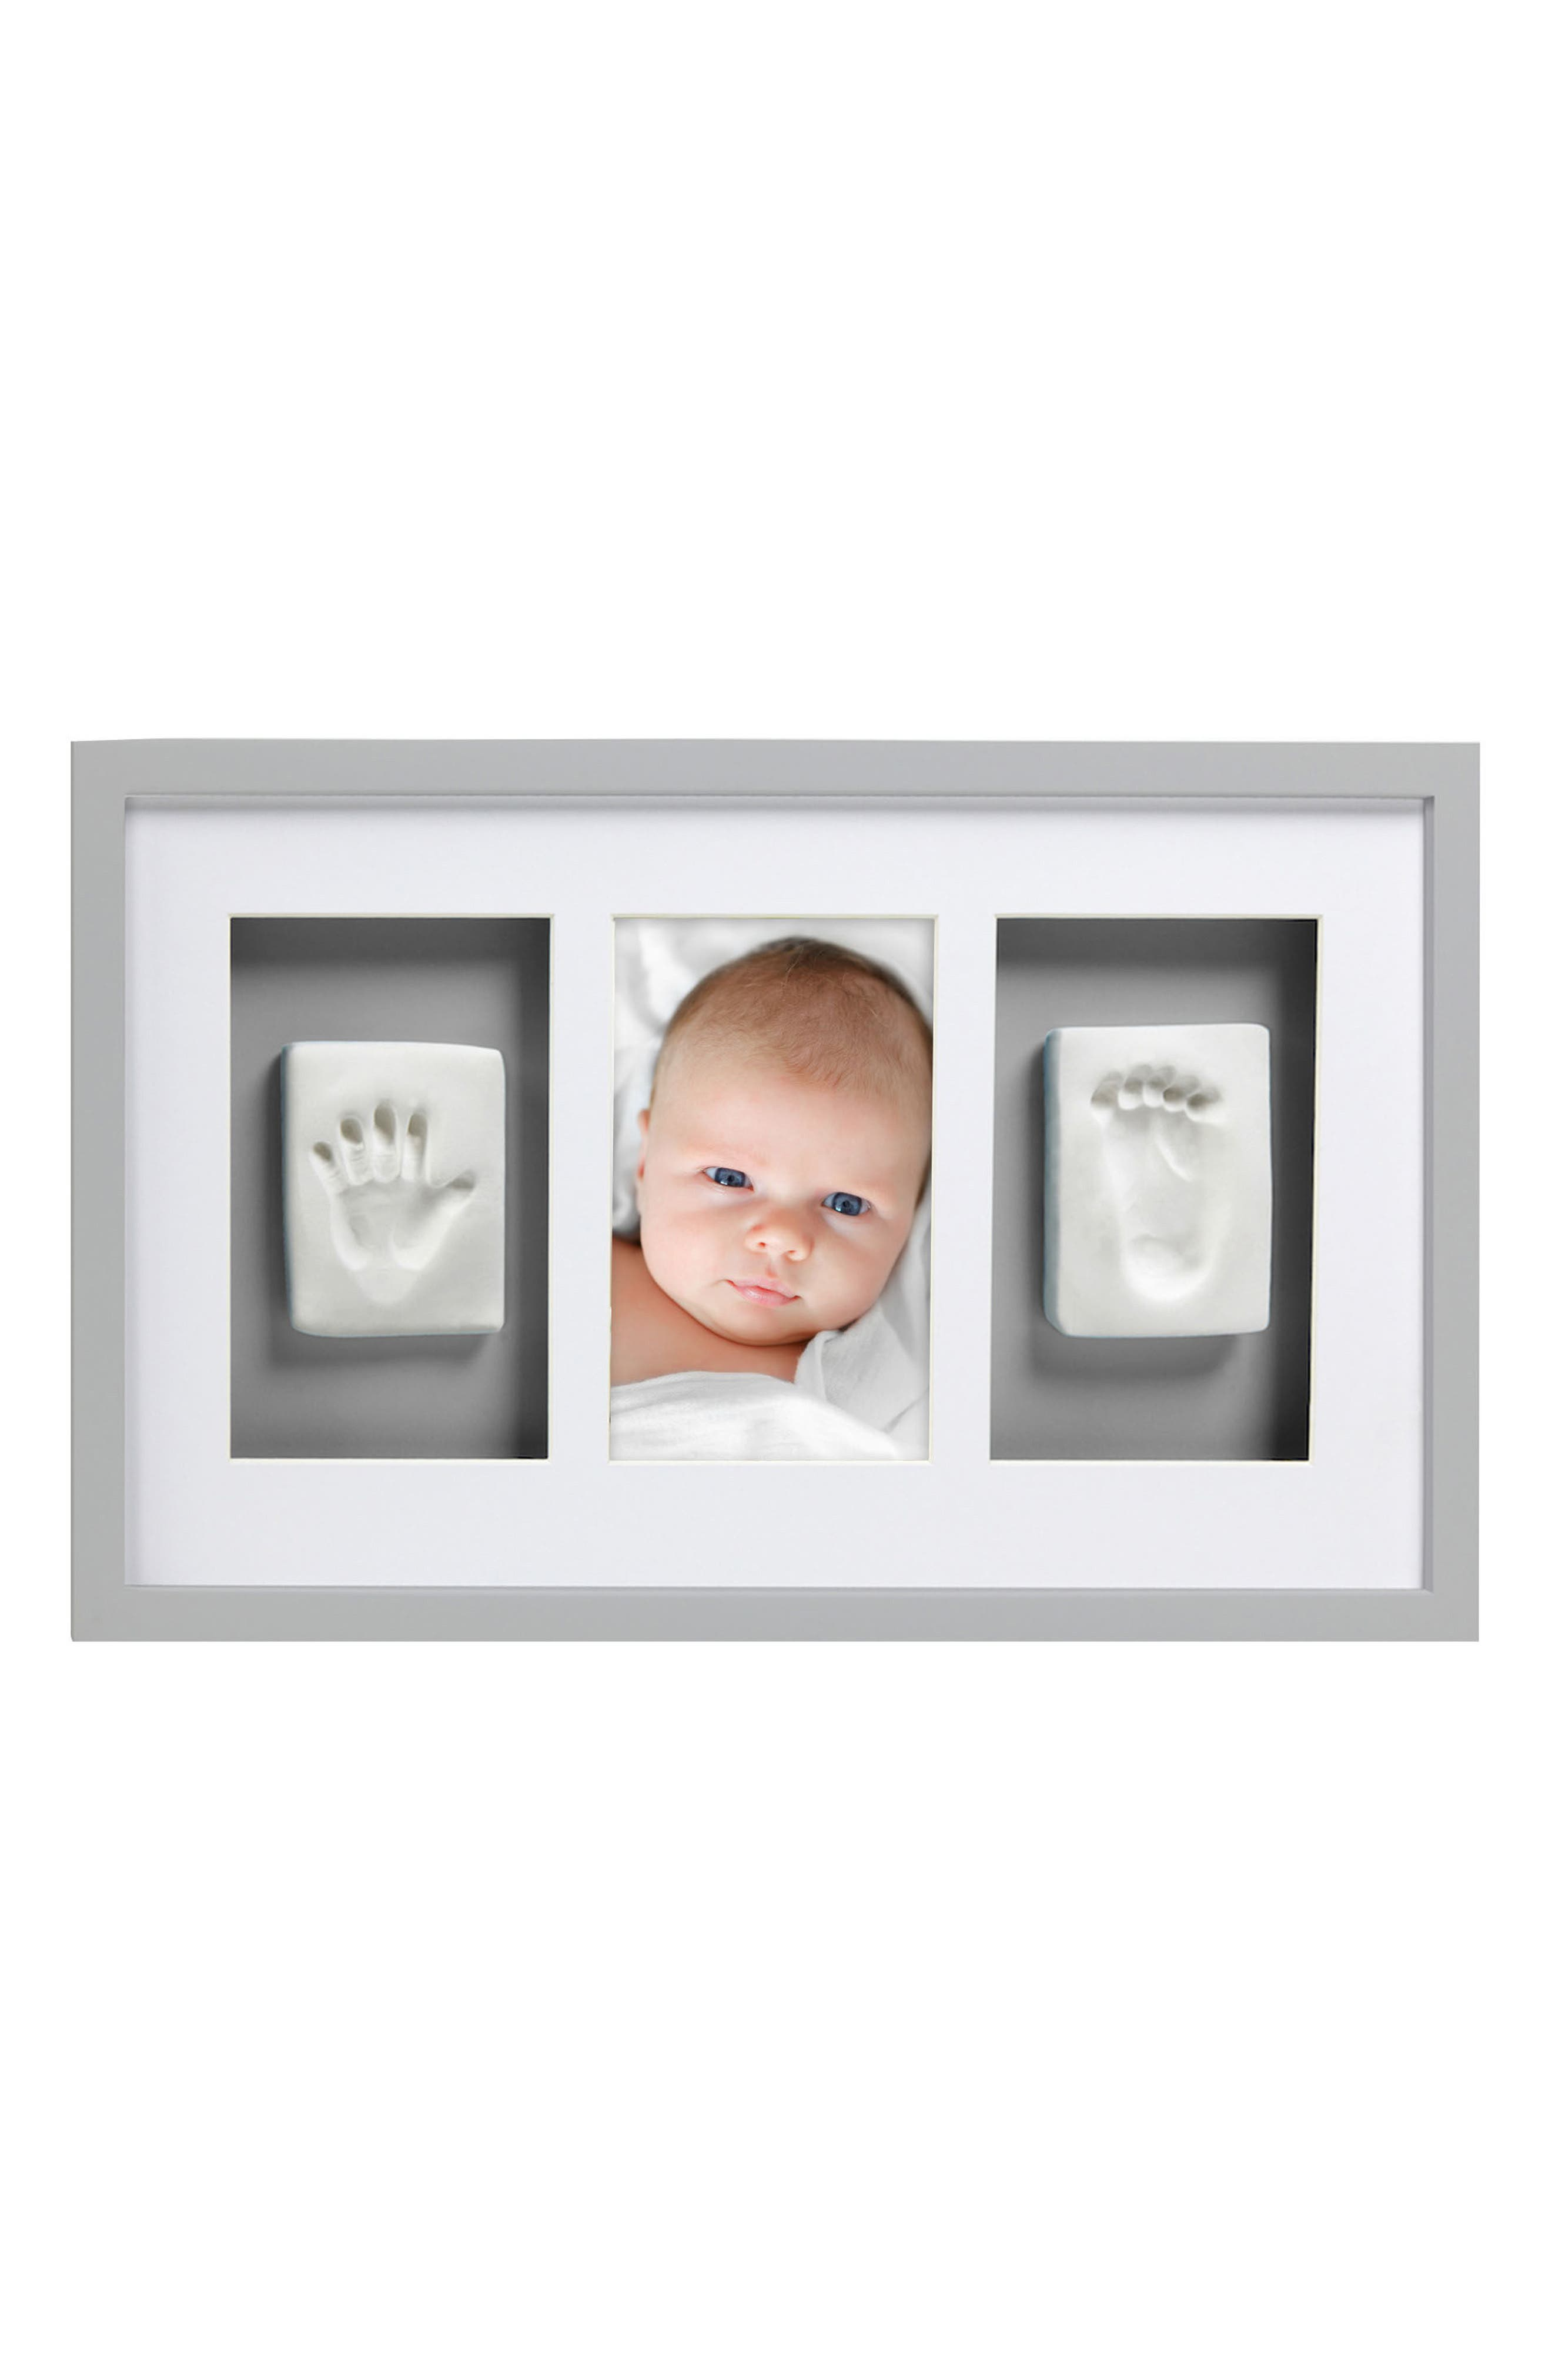 Babyprints Deluxe Wall Frame Kit,                         Main,                         color, 020